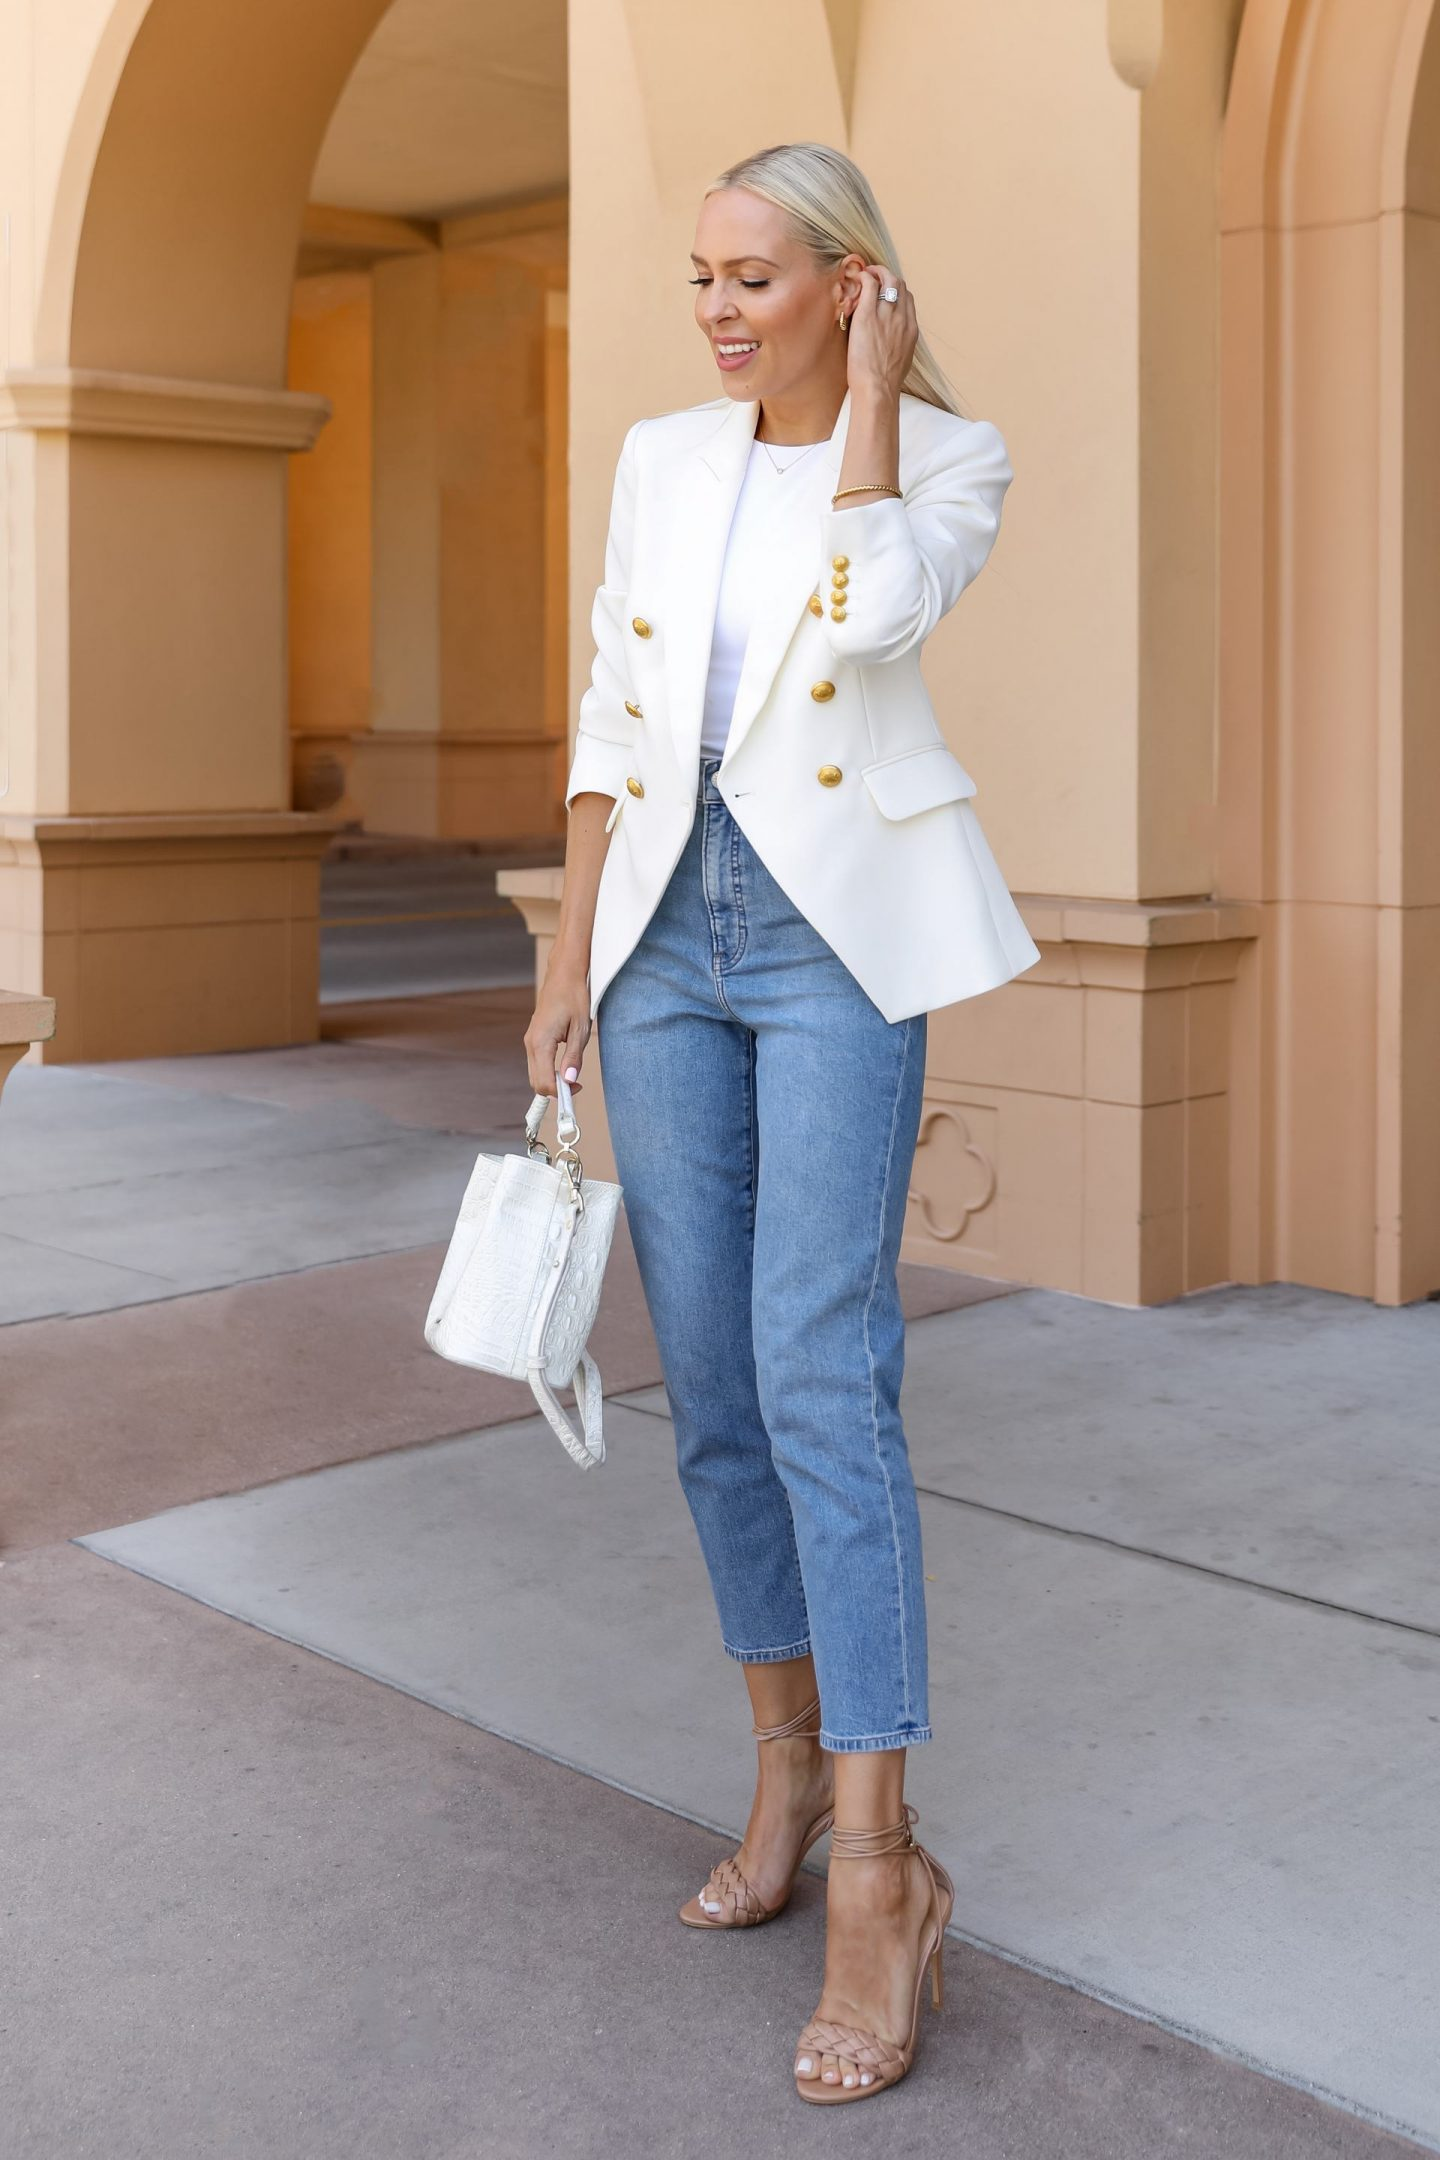 Neutral fall favorites blazers and simple tops with denim for fall style inspiration. By Lombard & Fifth Veronica Levy.